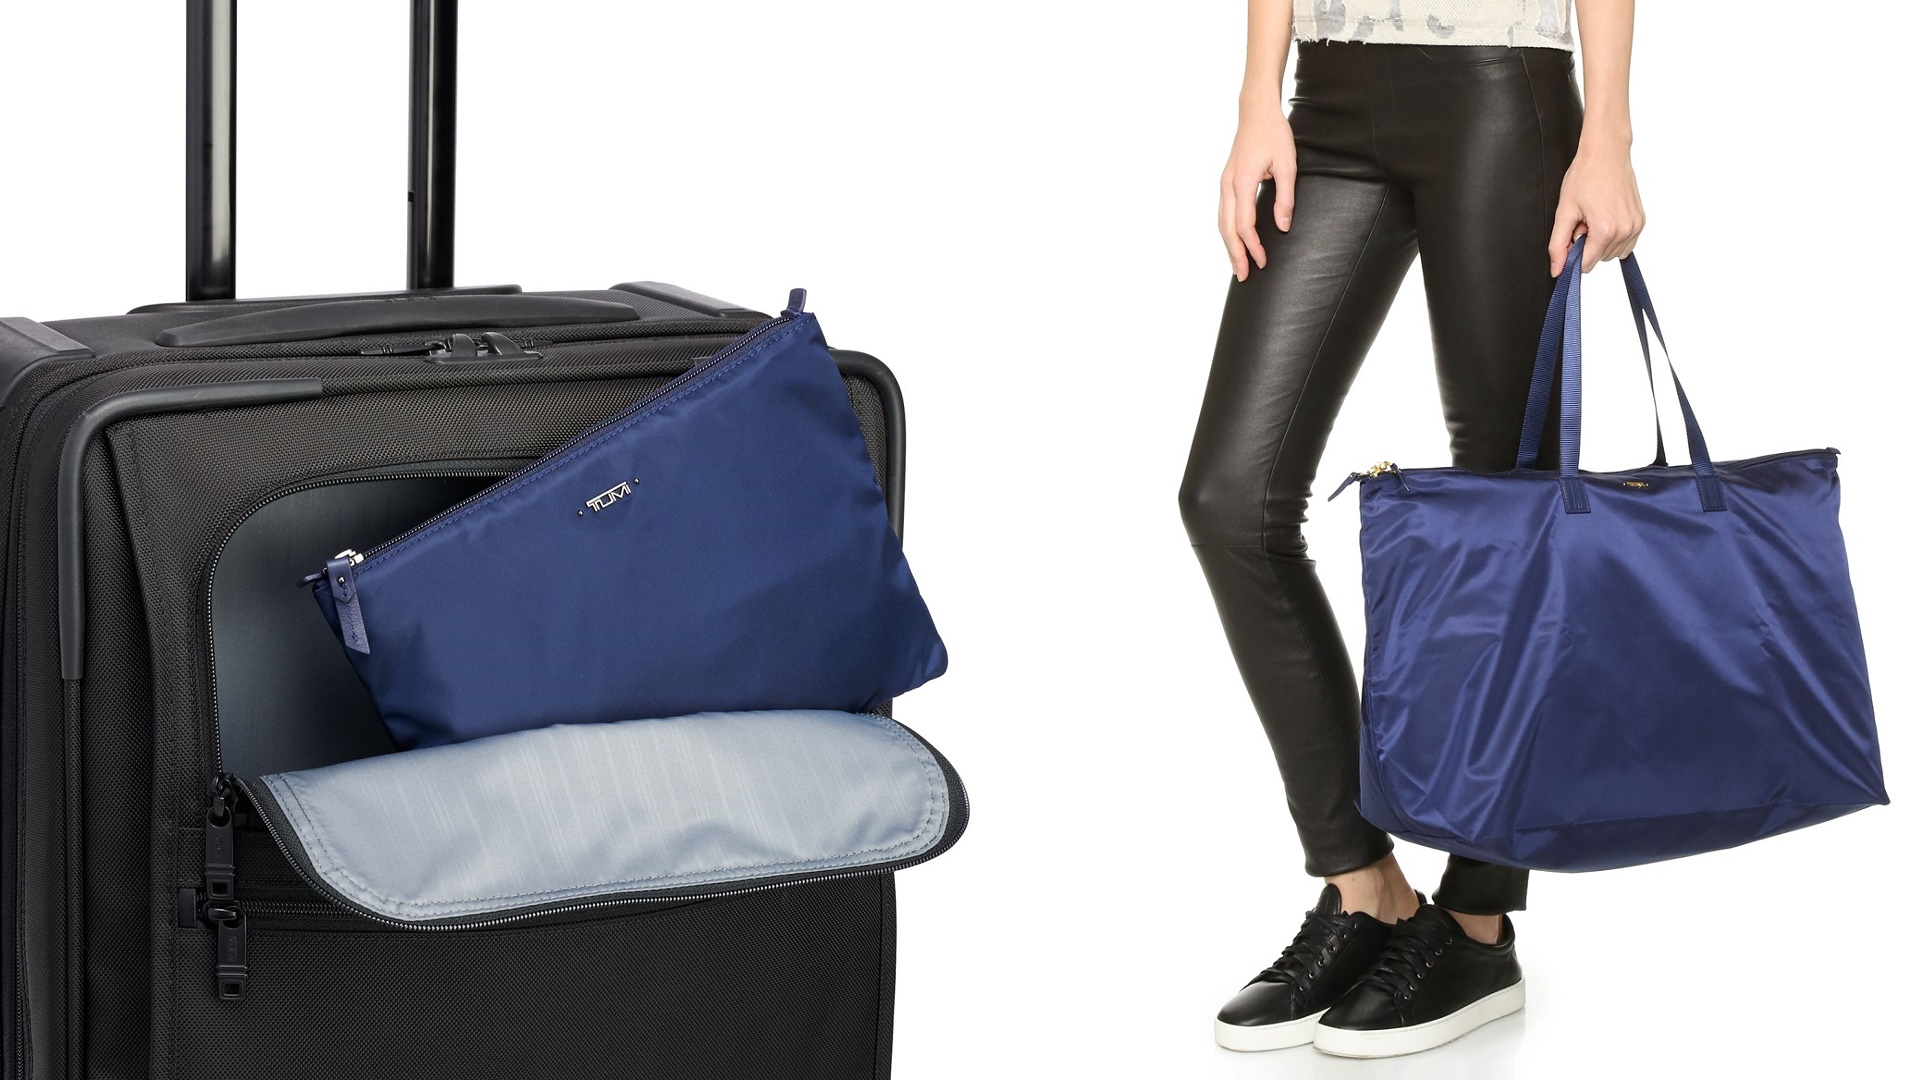 Packable Just In Case Travel Tote